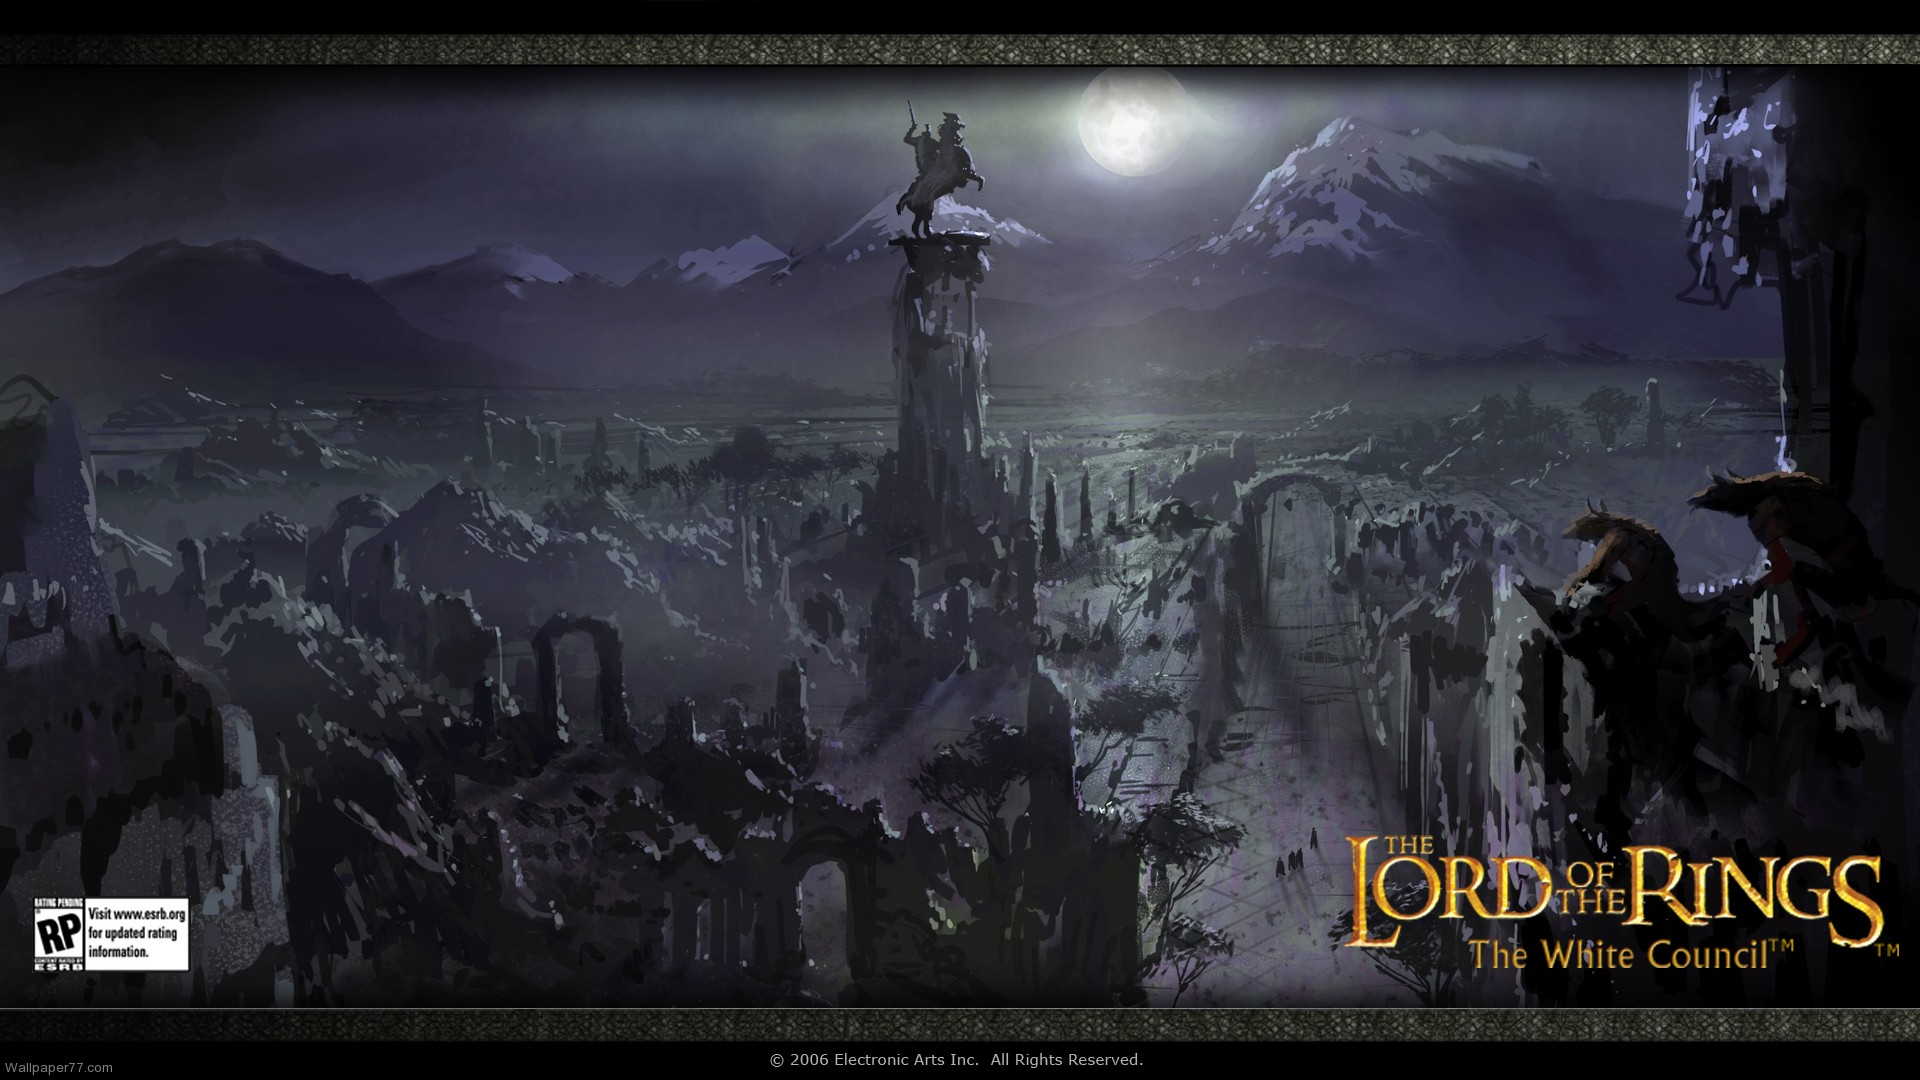 Lord Of The Rings wallpaper 59313 1920x1080